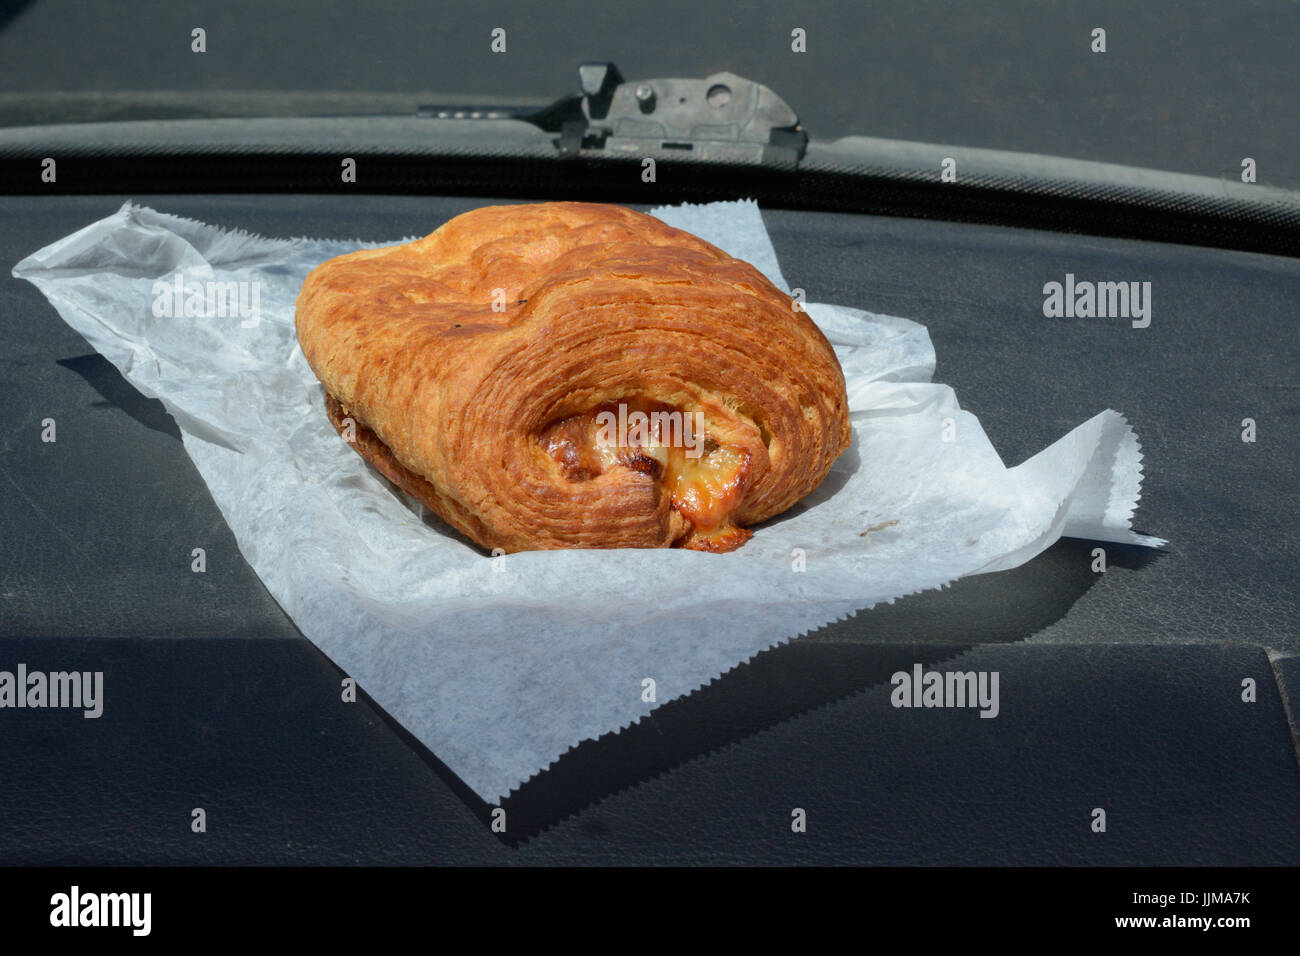 Breakfast on the go of bakery ham and Swiss cheese croissant on automobile dashboard - Stock Image